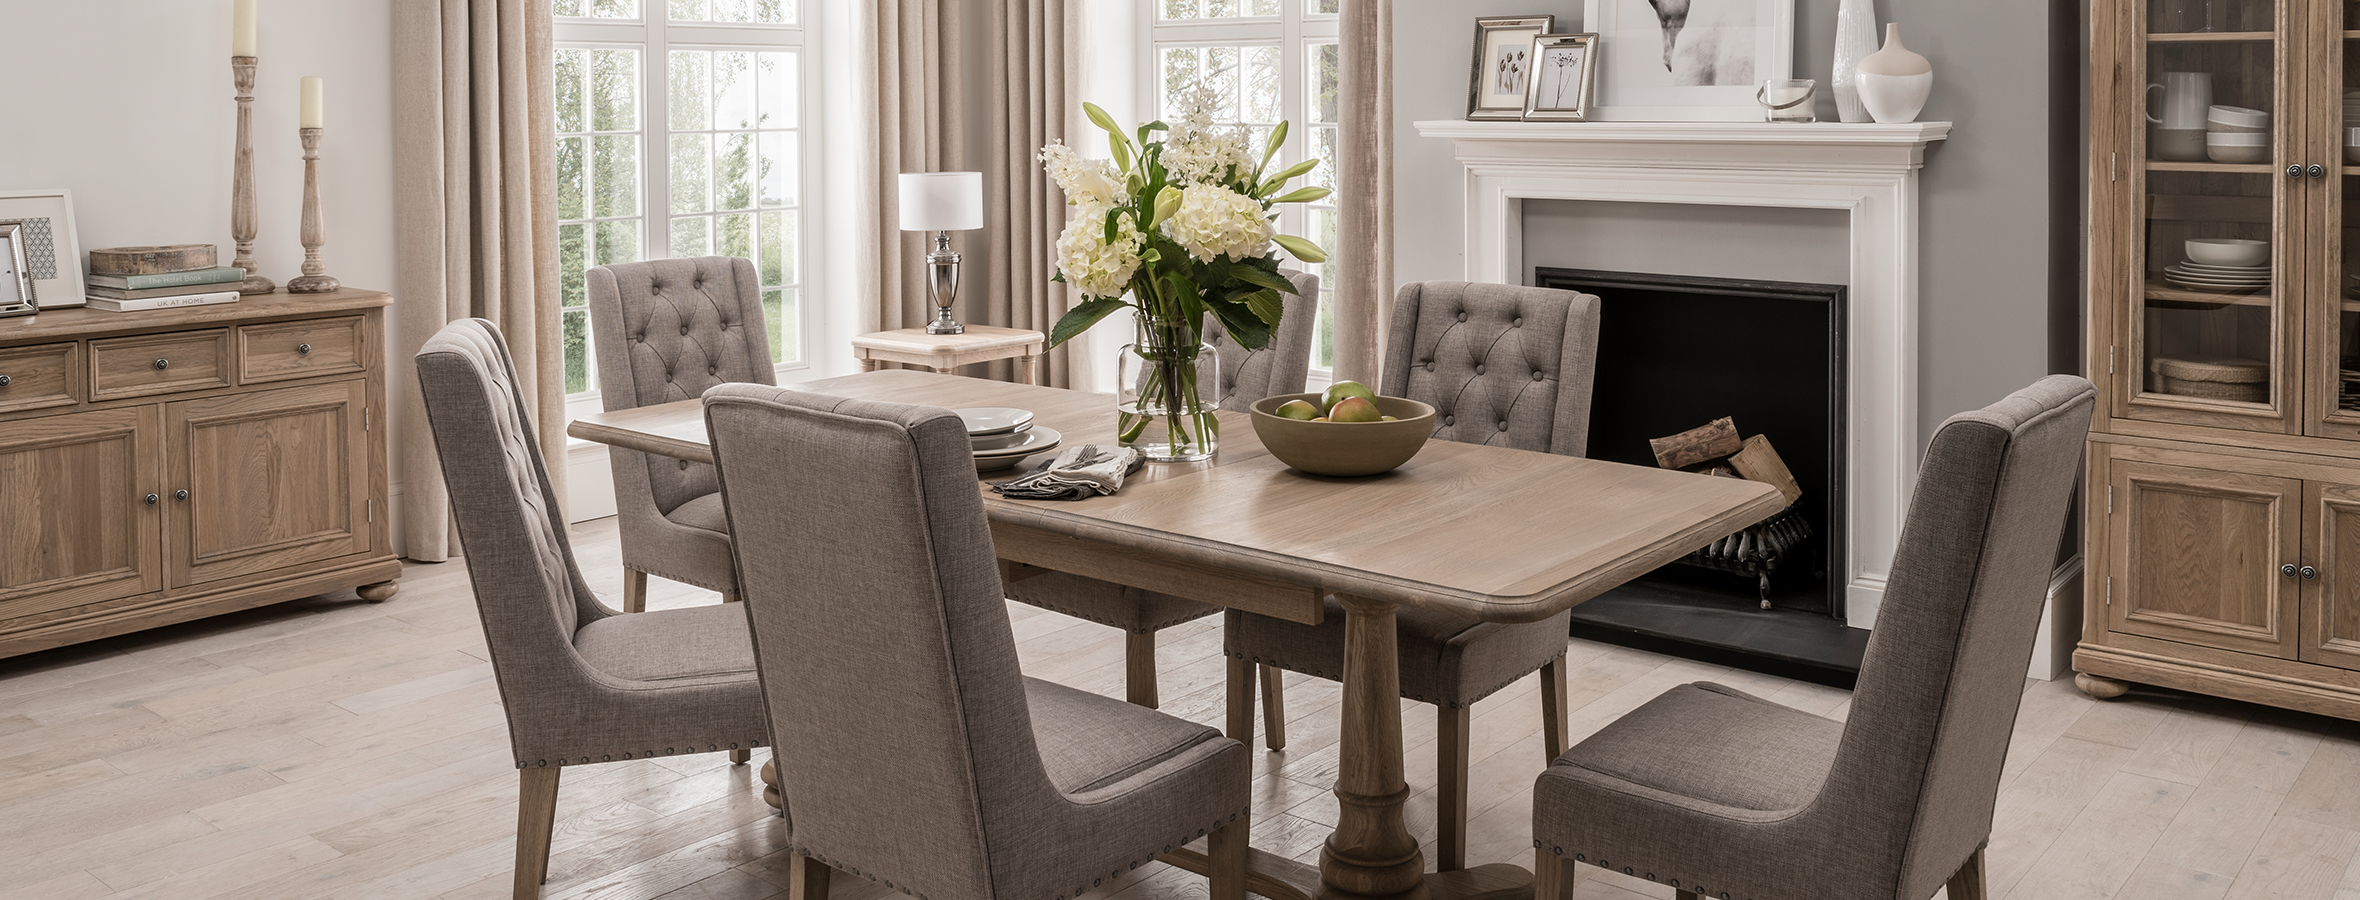 Hillford Living & Dining